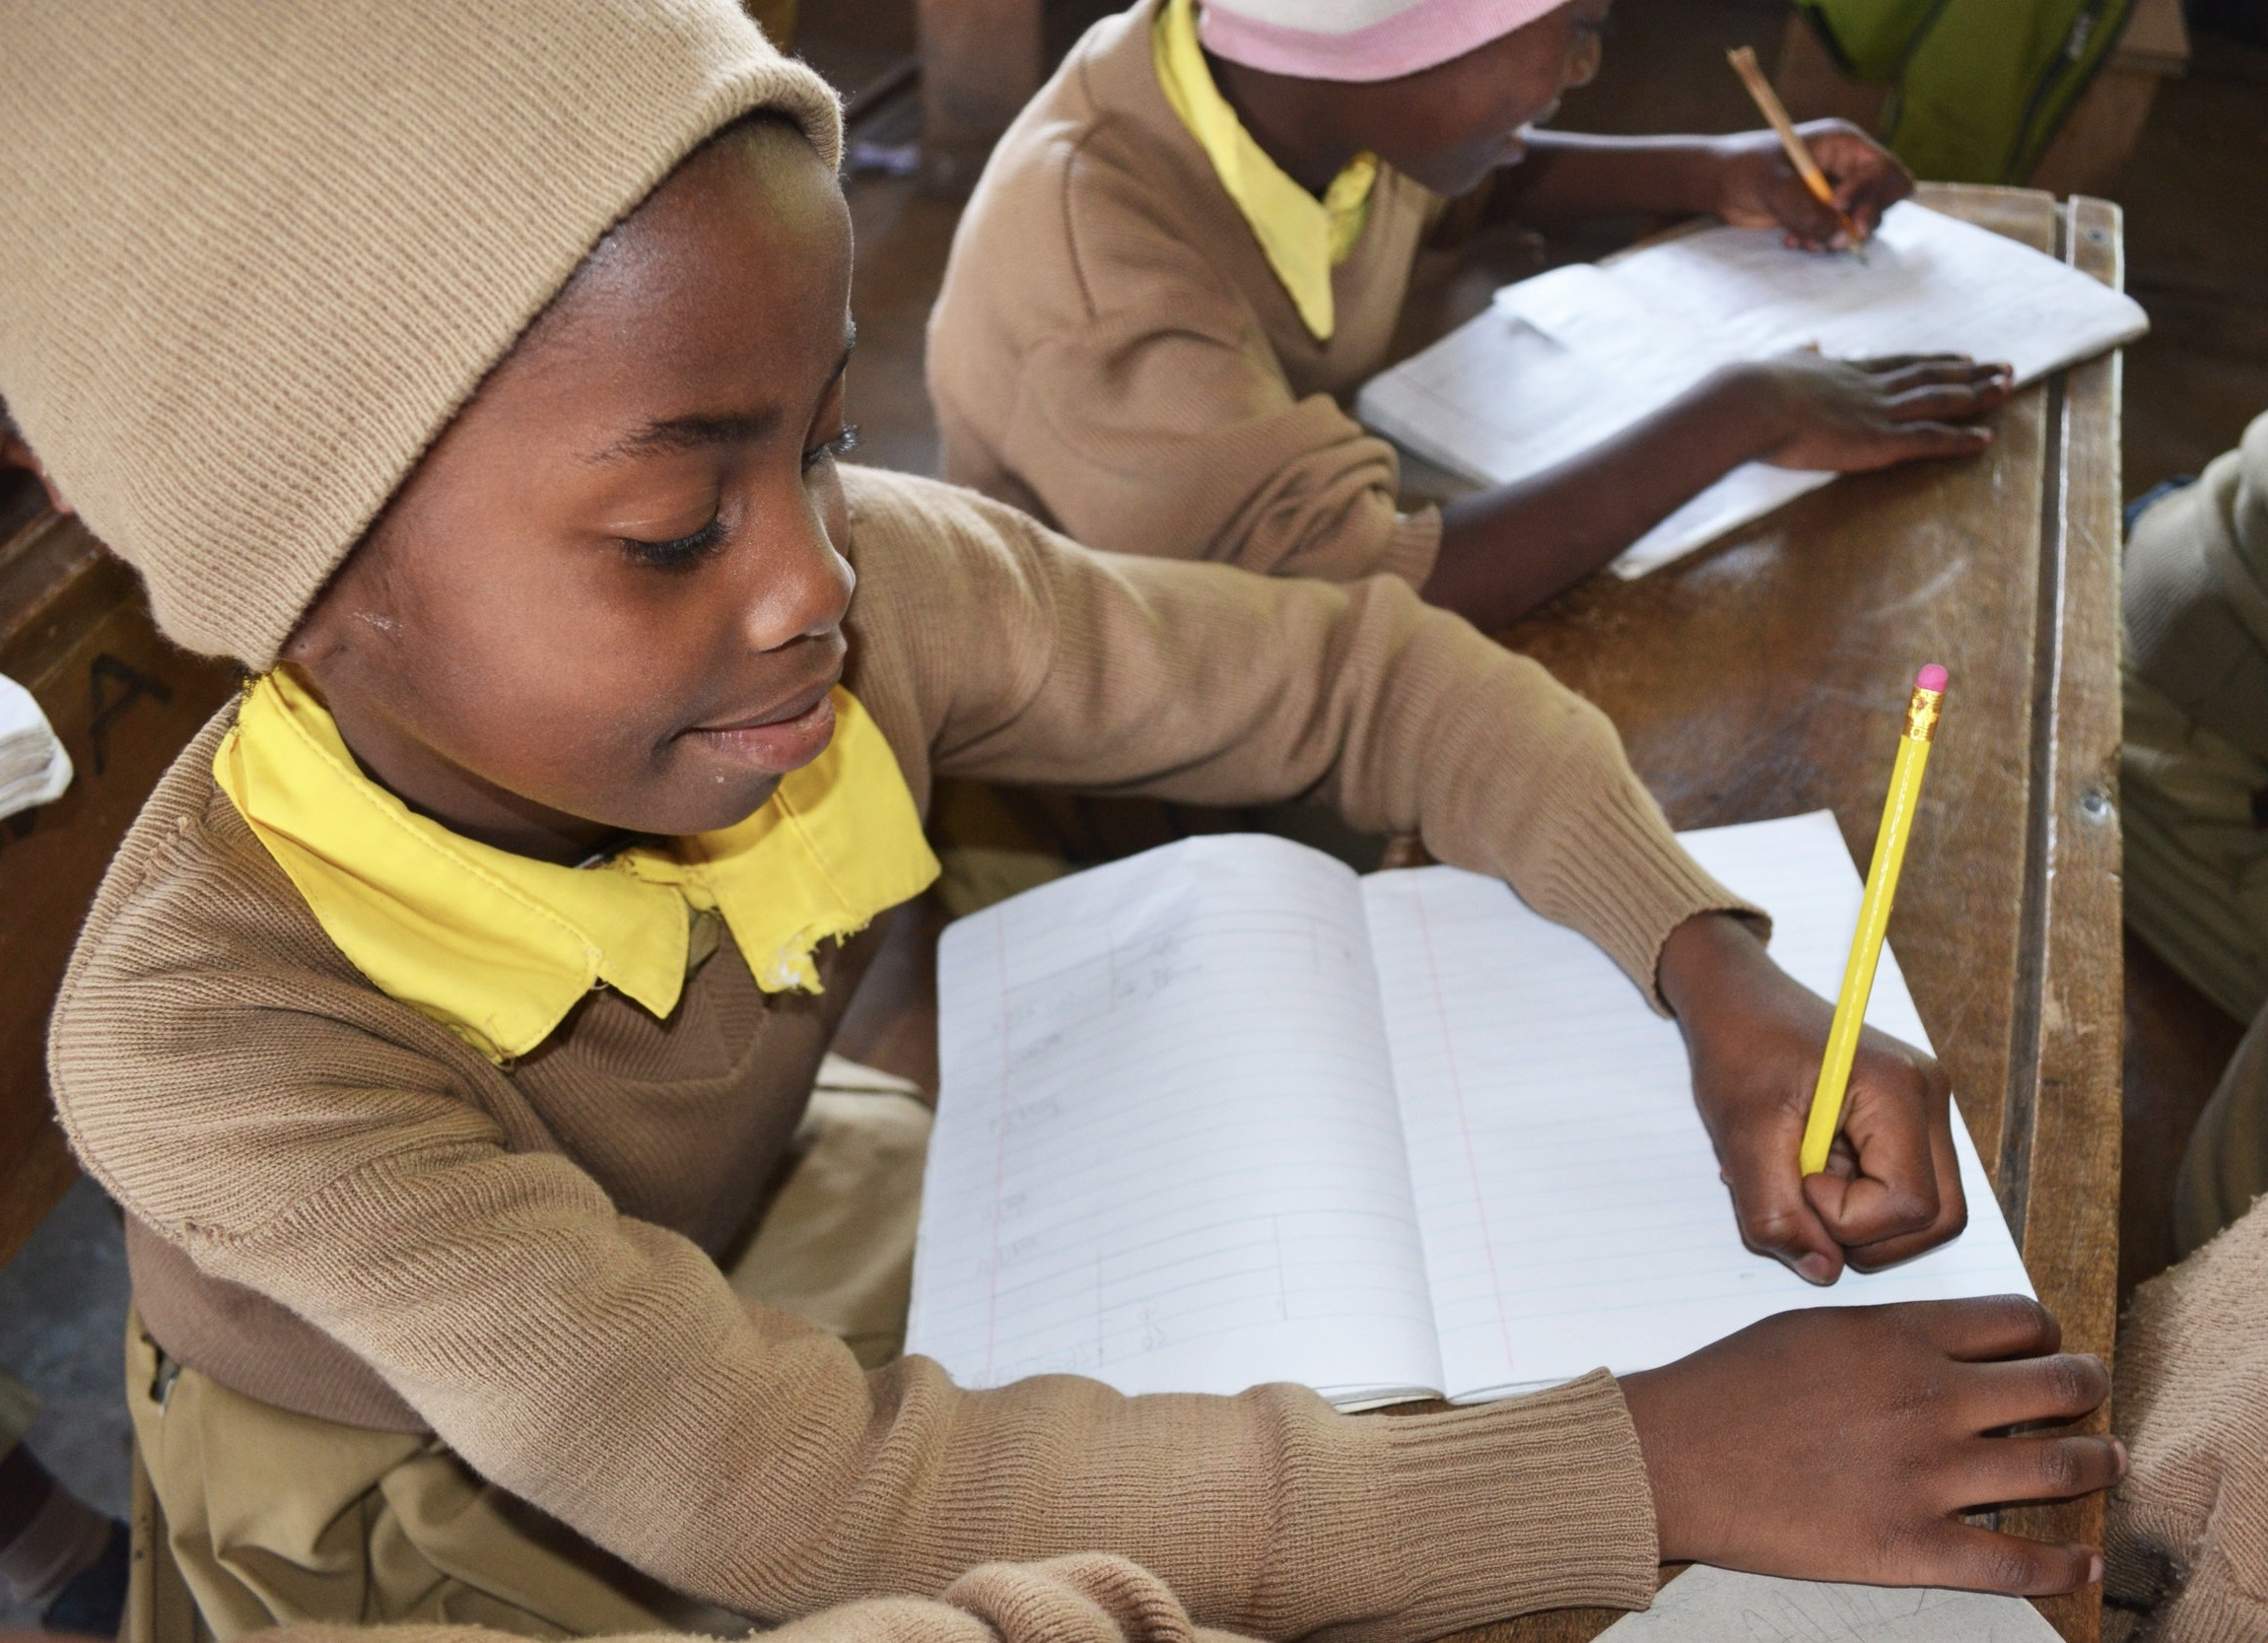 OUR IMPACT - So far we have provided 12,000+ hours of light for girls to do their homework.